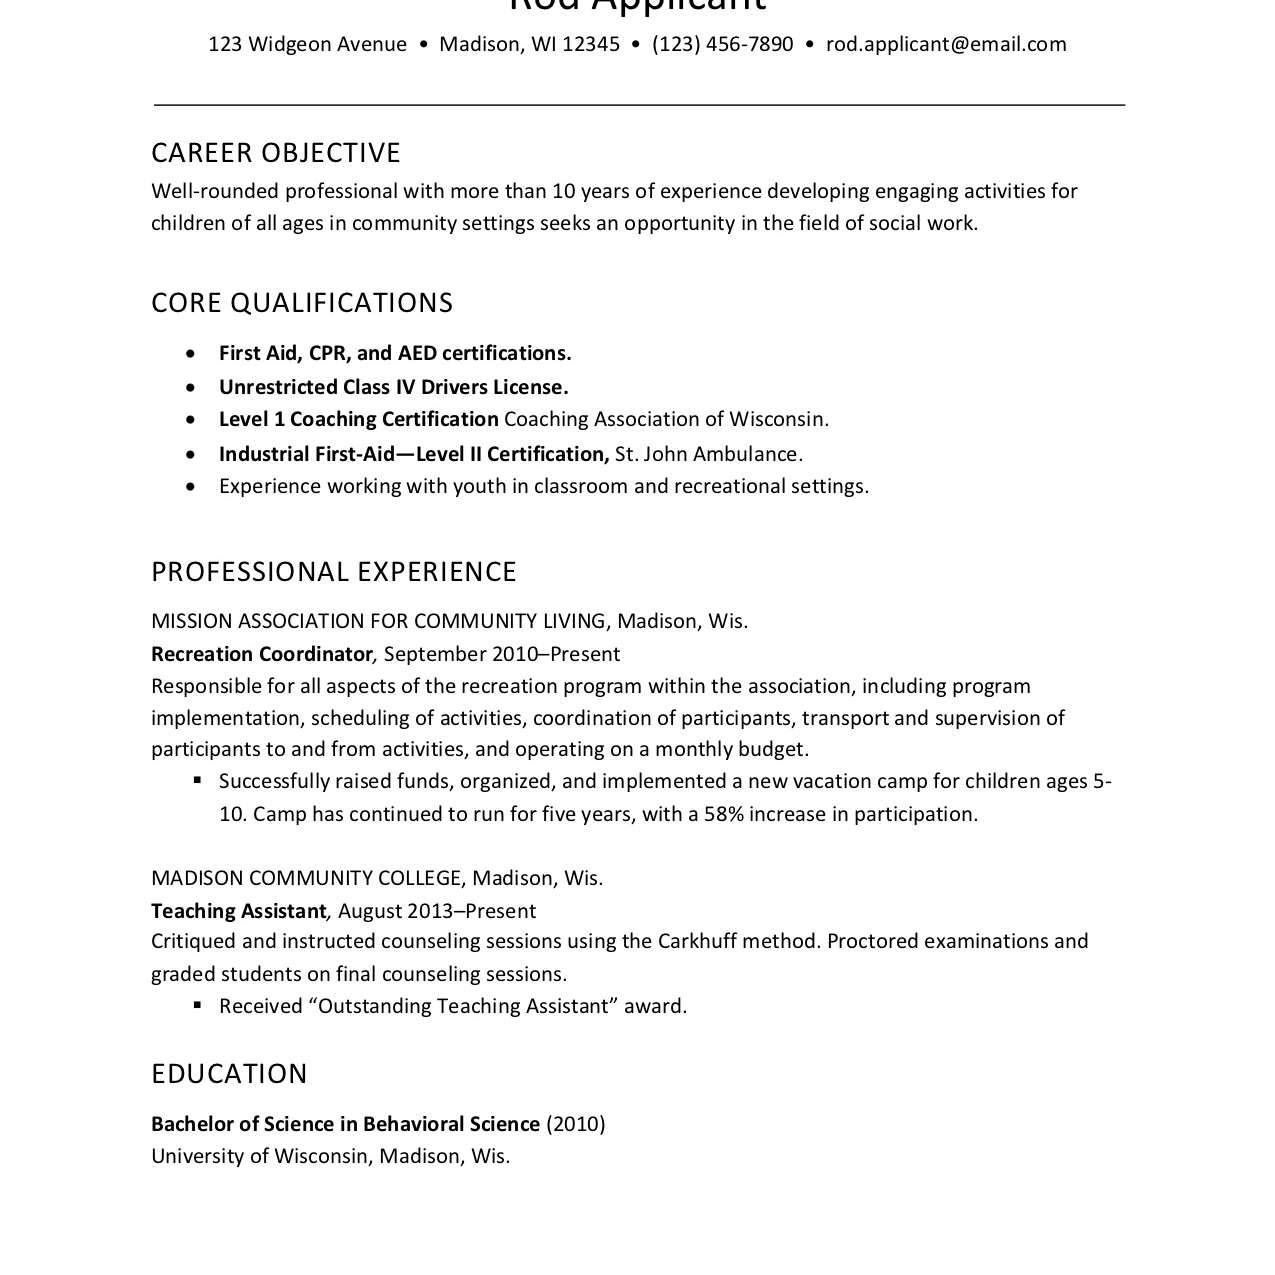 resume example for childcare social services worker child care provider sample encoder Resume Child Care Provider Resume